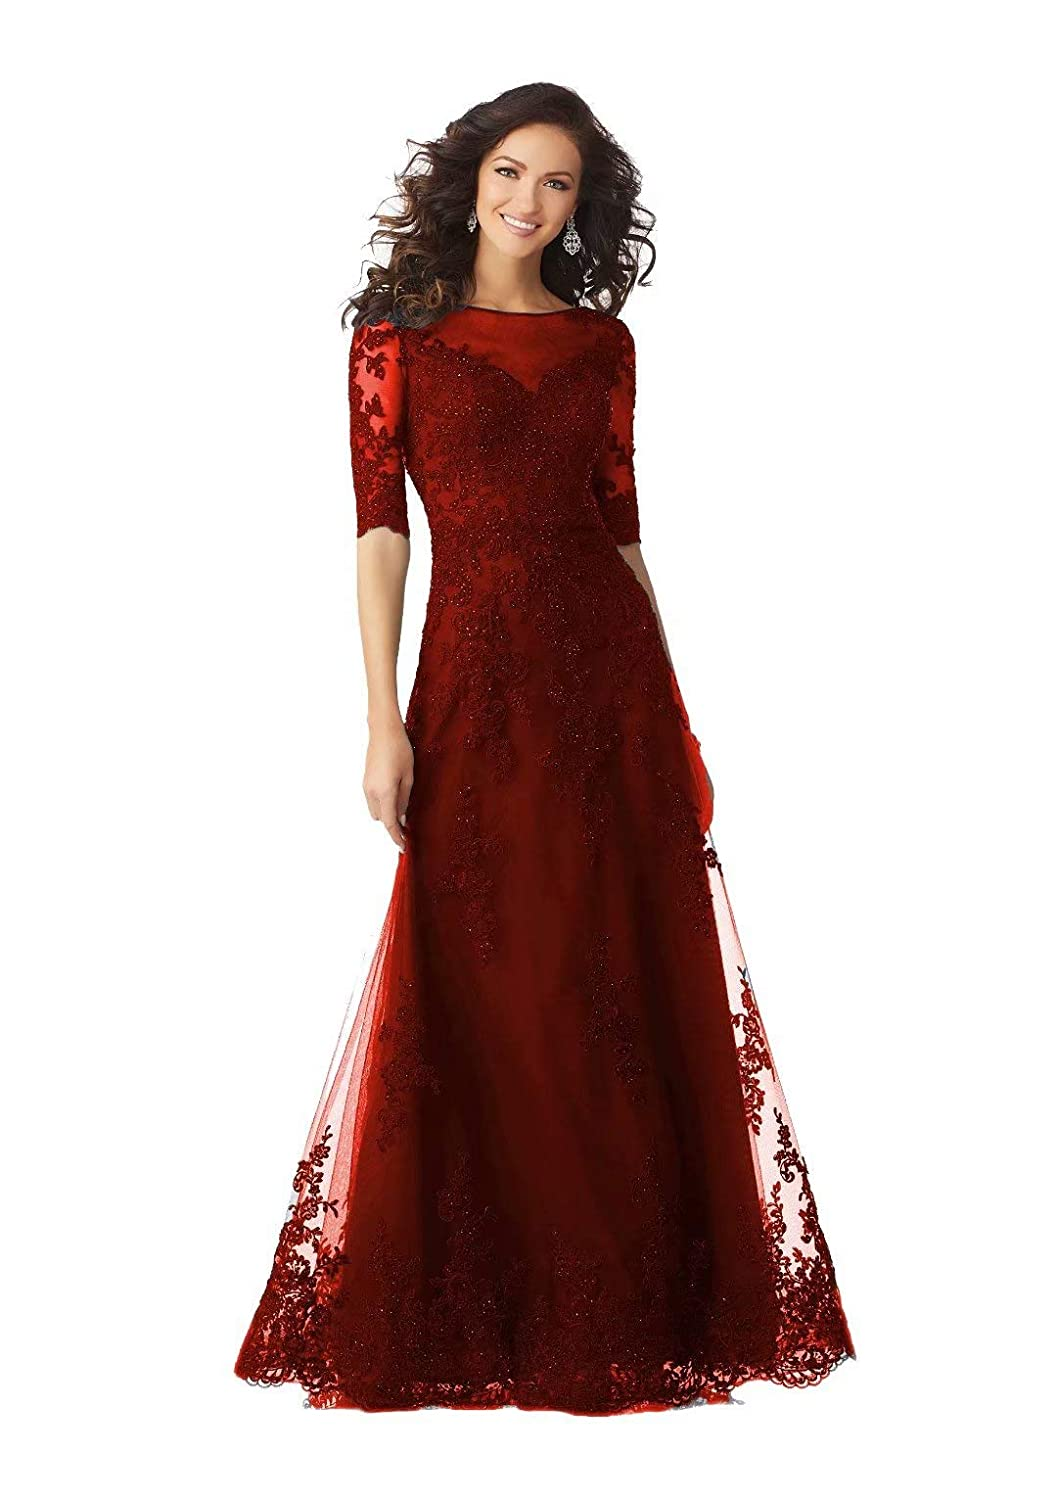 color 8 Unions Women Long Formal Evening Dresses Lace Applique Beaded Prom Party Gowns